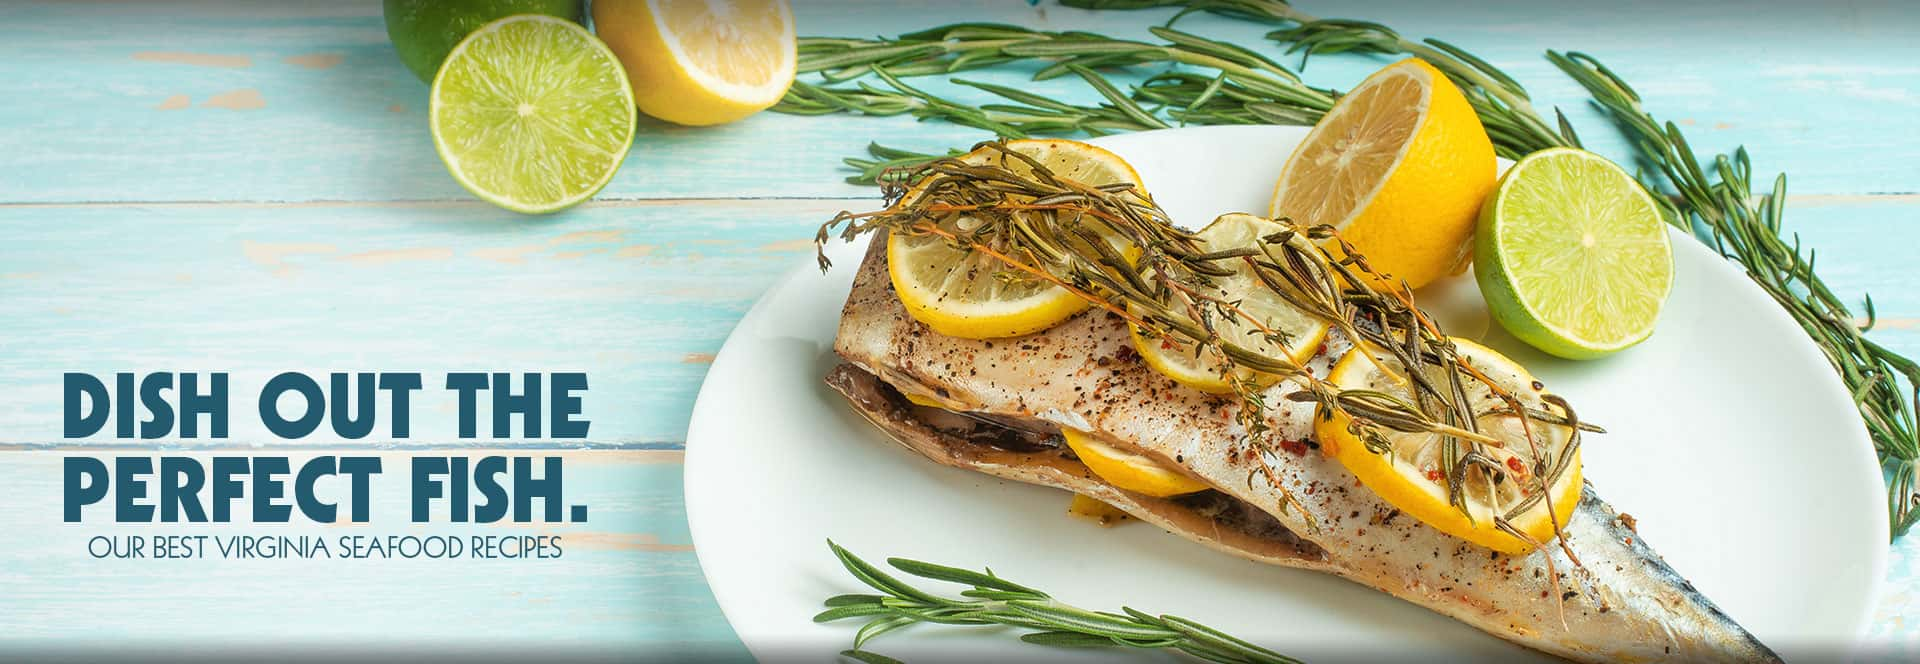 Dish Out the Perfect Fish — our best Virginia Seafood recipes.